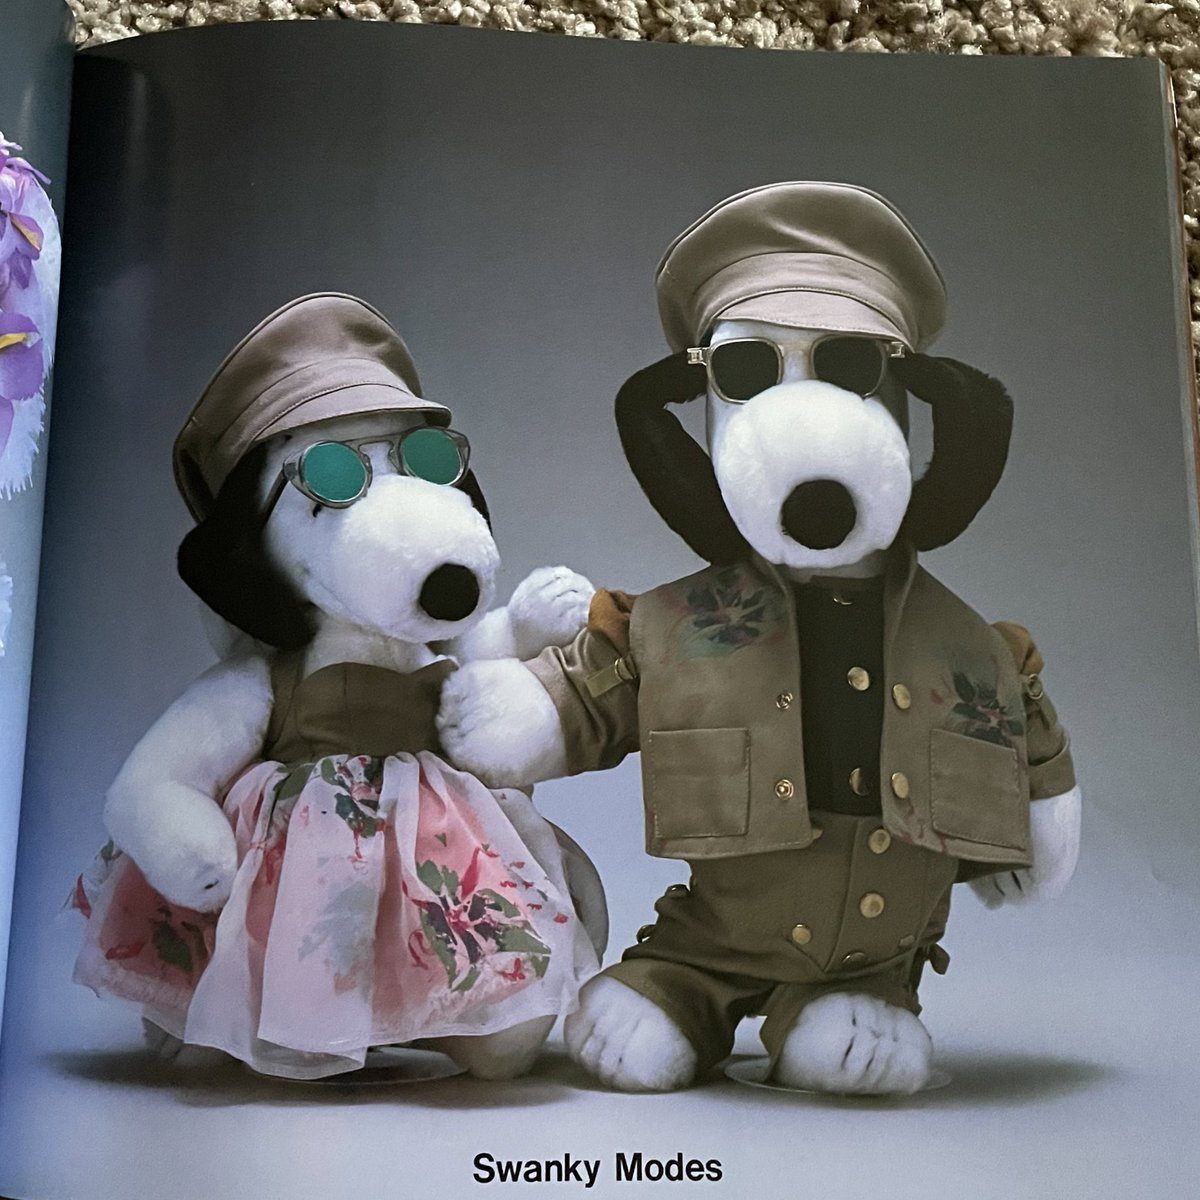 Replying to @skirtsmusic: Just trying to be on the same level as all the snoopys in this snoopy in fashion book